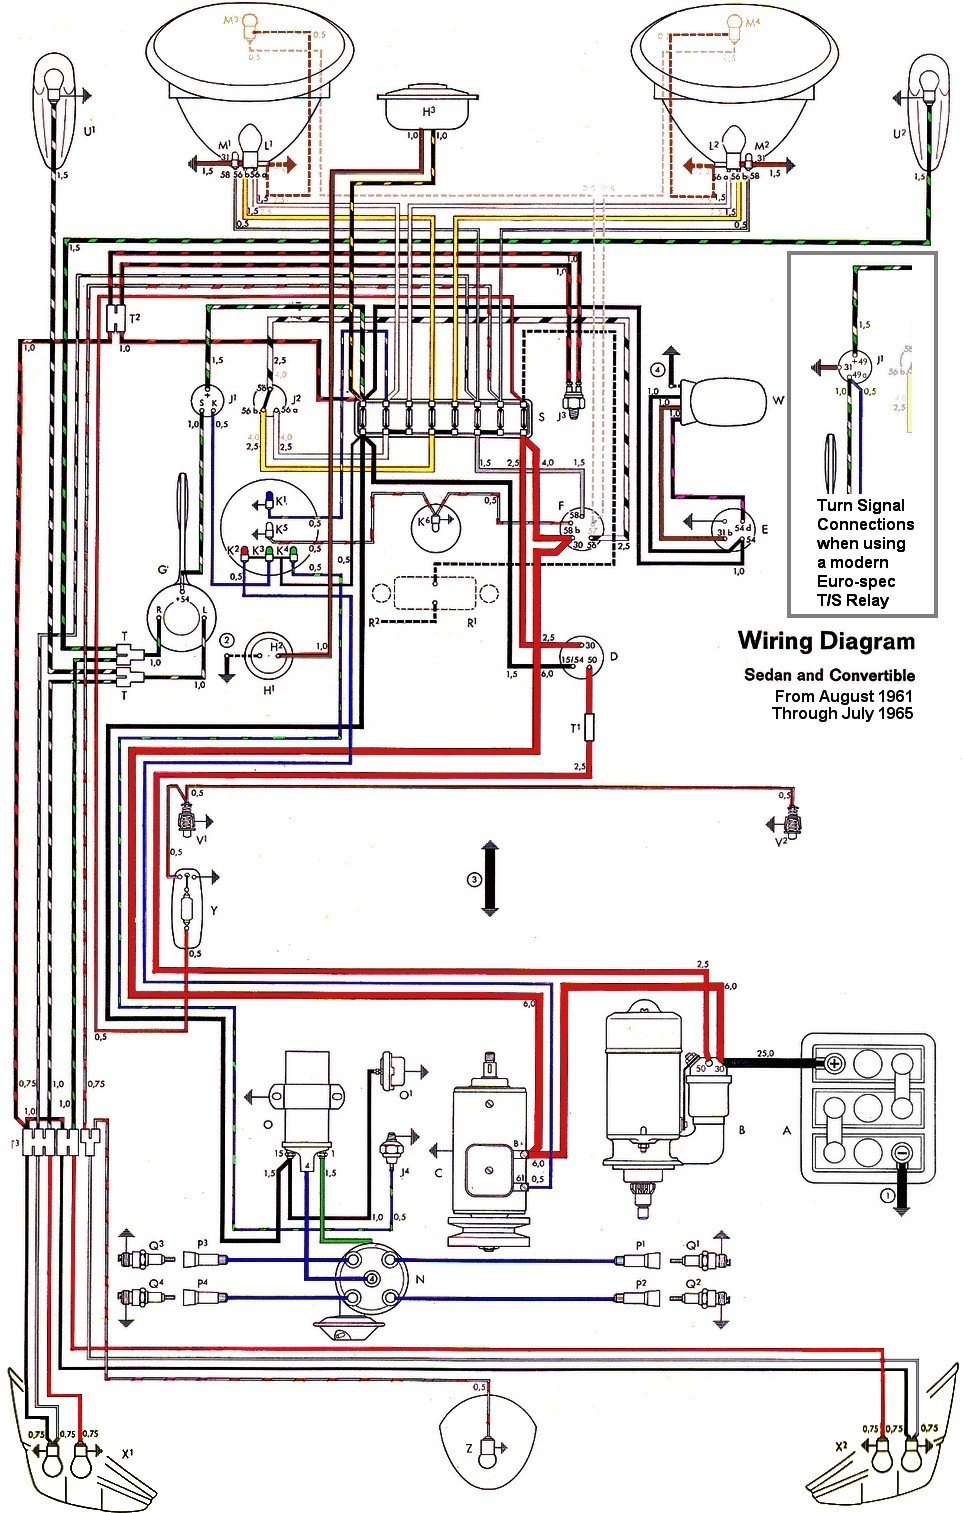 Type 1 Wiring Diagrams 1965 Mustang Horn Diagram Schematic